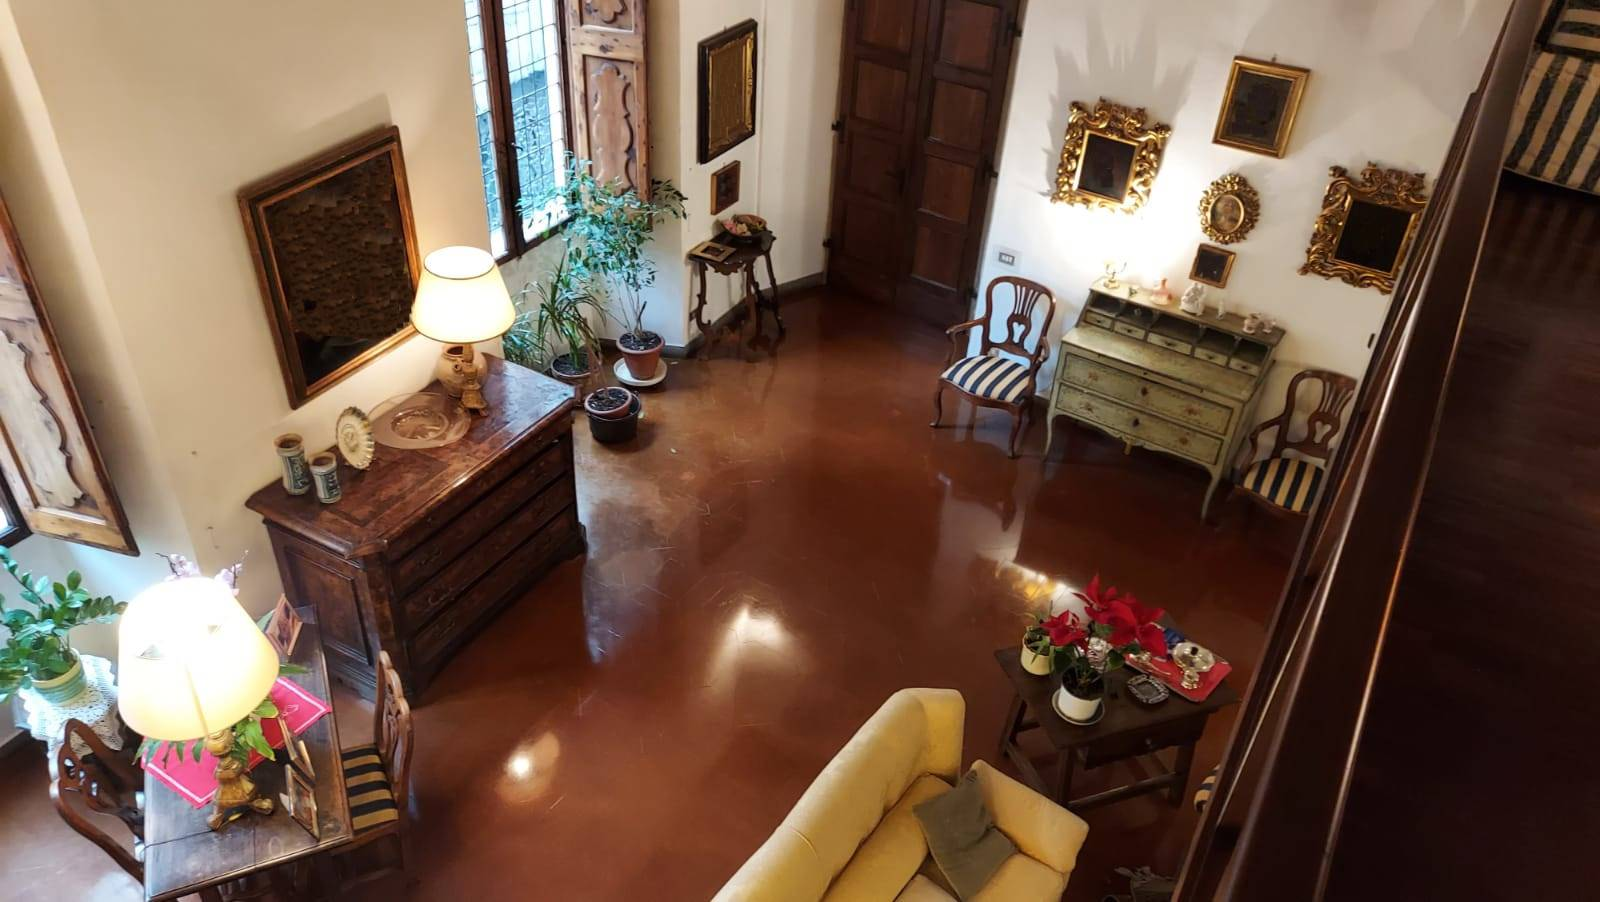 SAN FREDIANO, FIRENZE, Apartment for sale of 300 Sq. mt., Excellent Condition, Heating Individual heating system, Energetic class: F, Epi: 119,17